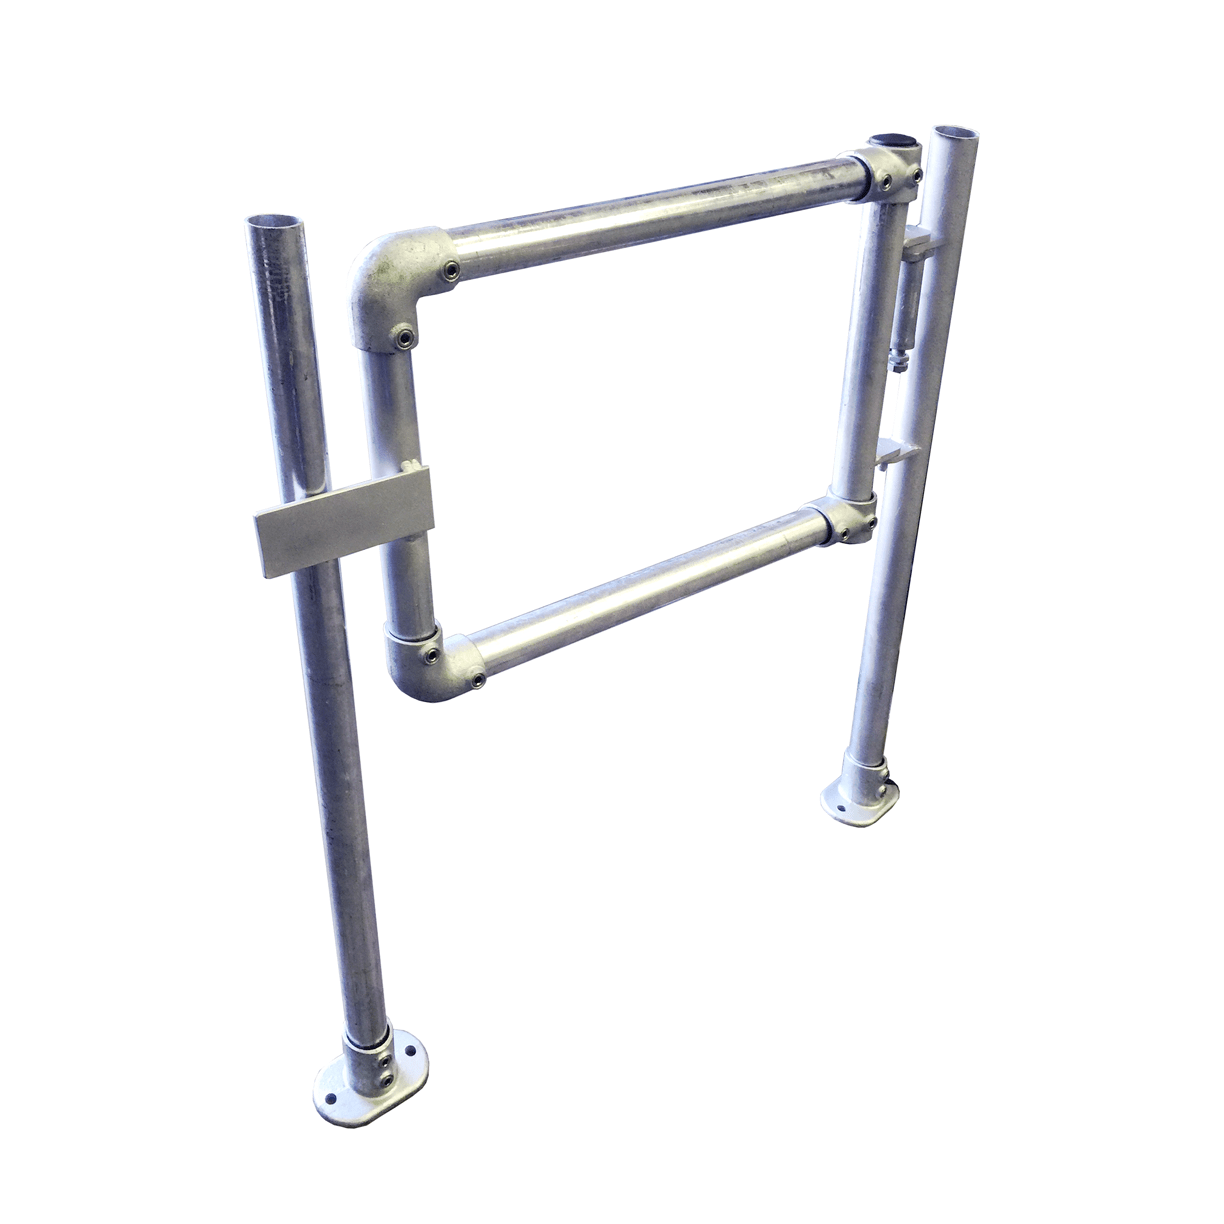 Key Clamp Handrail